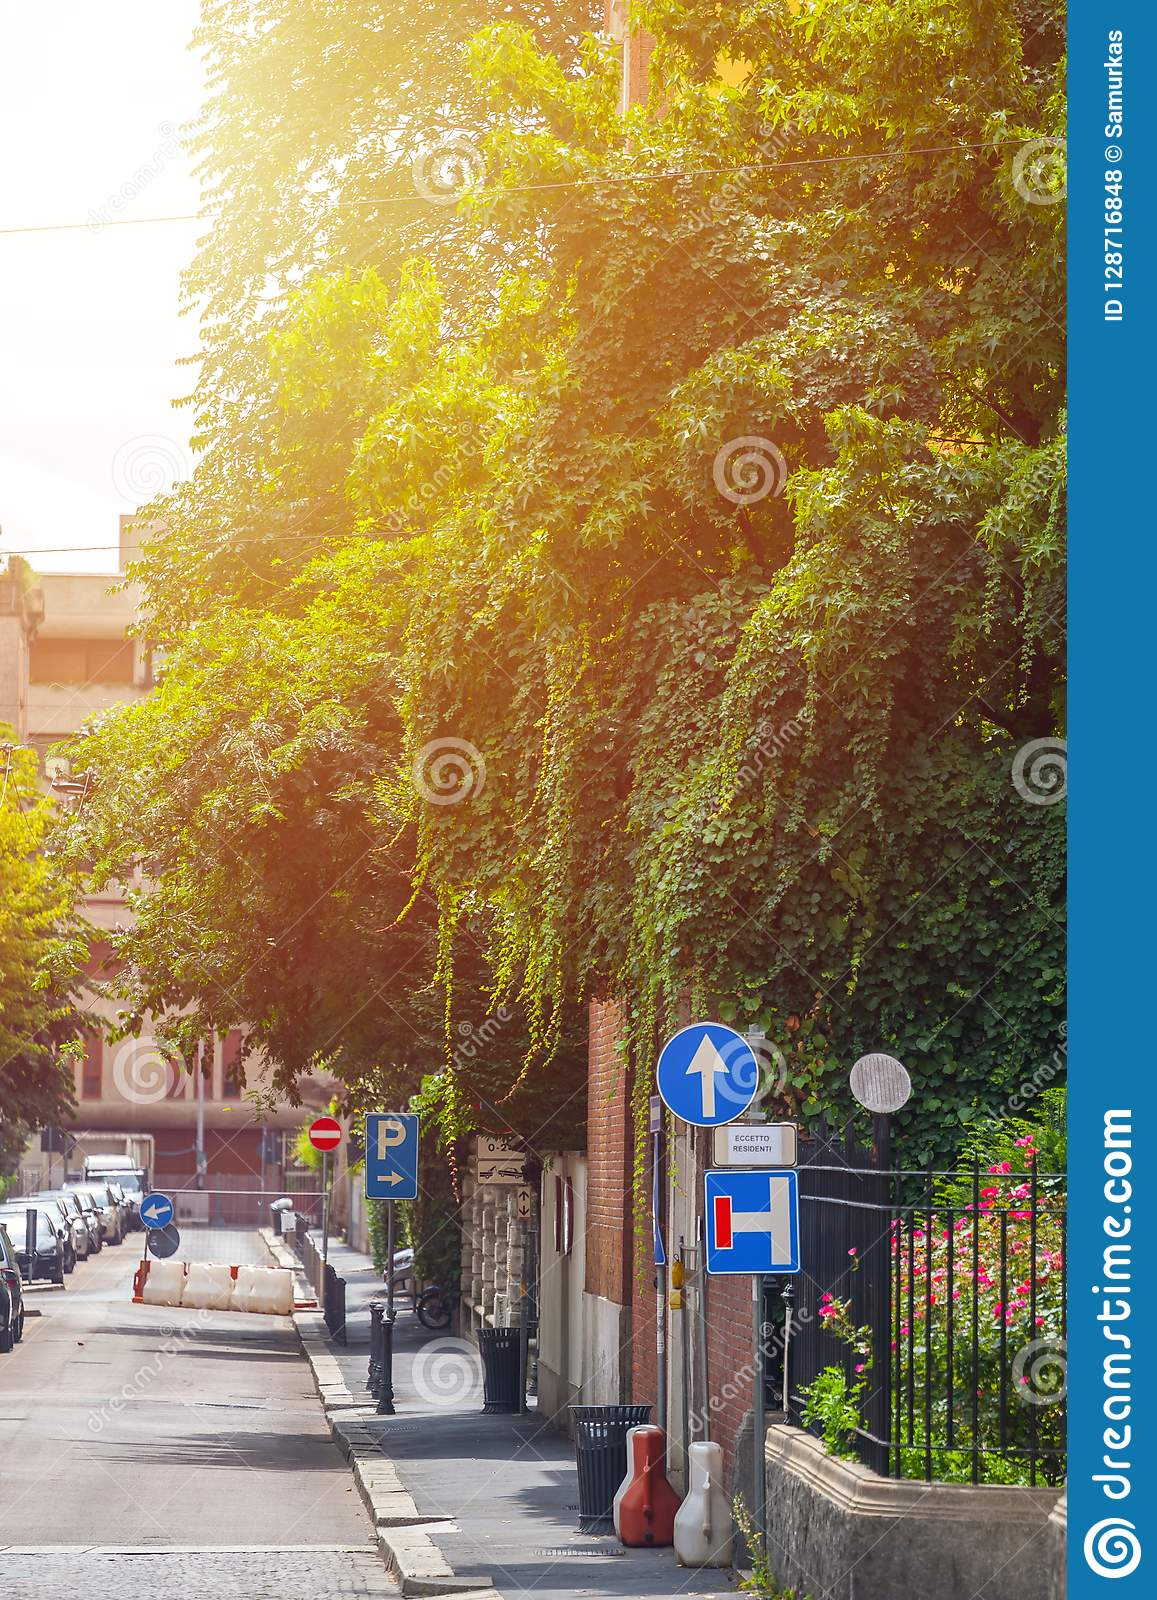 Houses With Flowers On The Windows In Milan Italy Stock